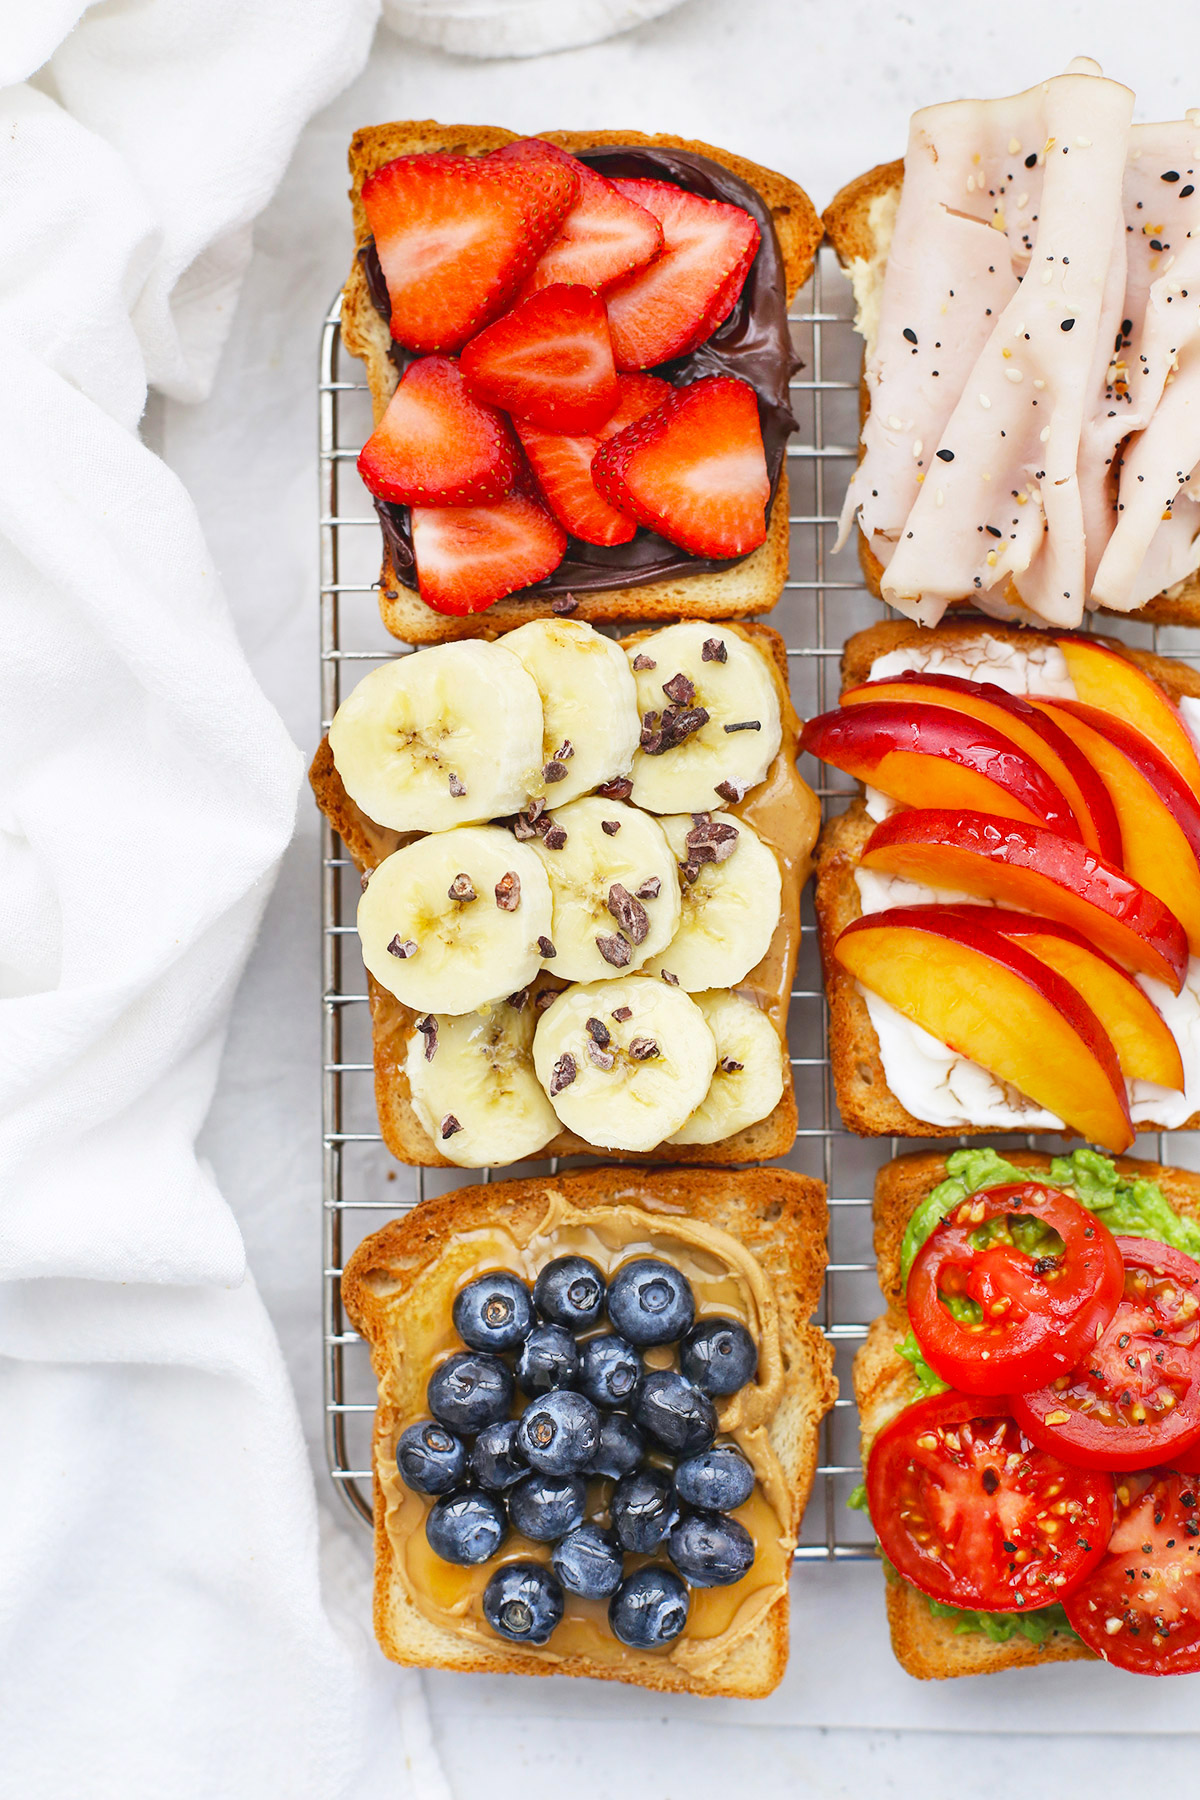 Close up view of six Slices of Gluten-Free toast with different toppings on a wire cooling rack